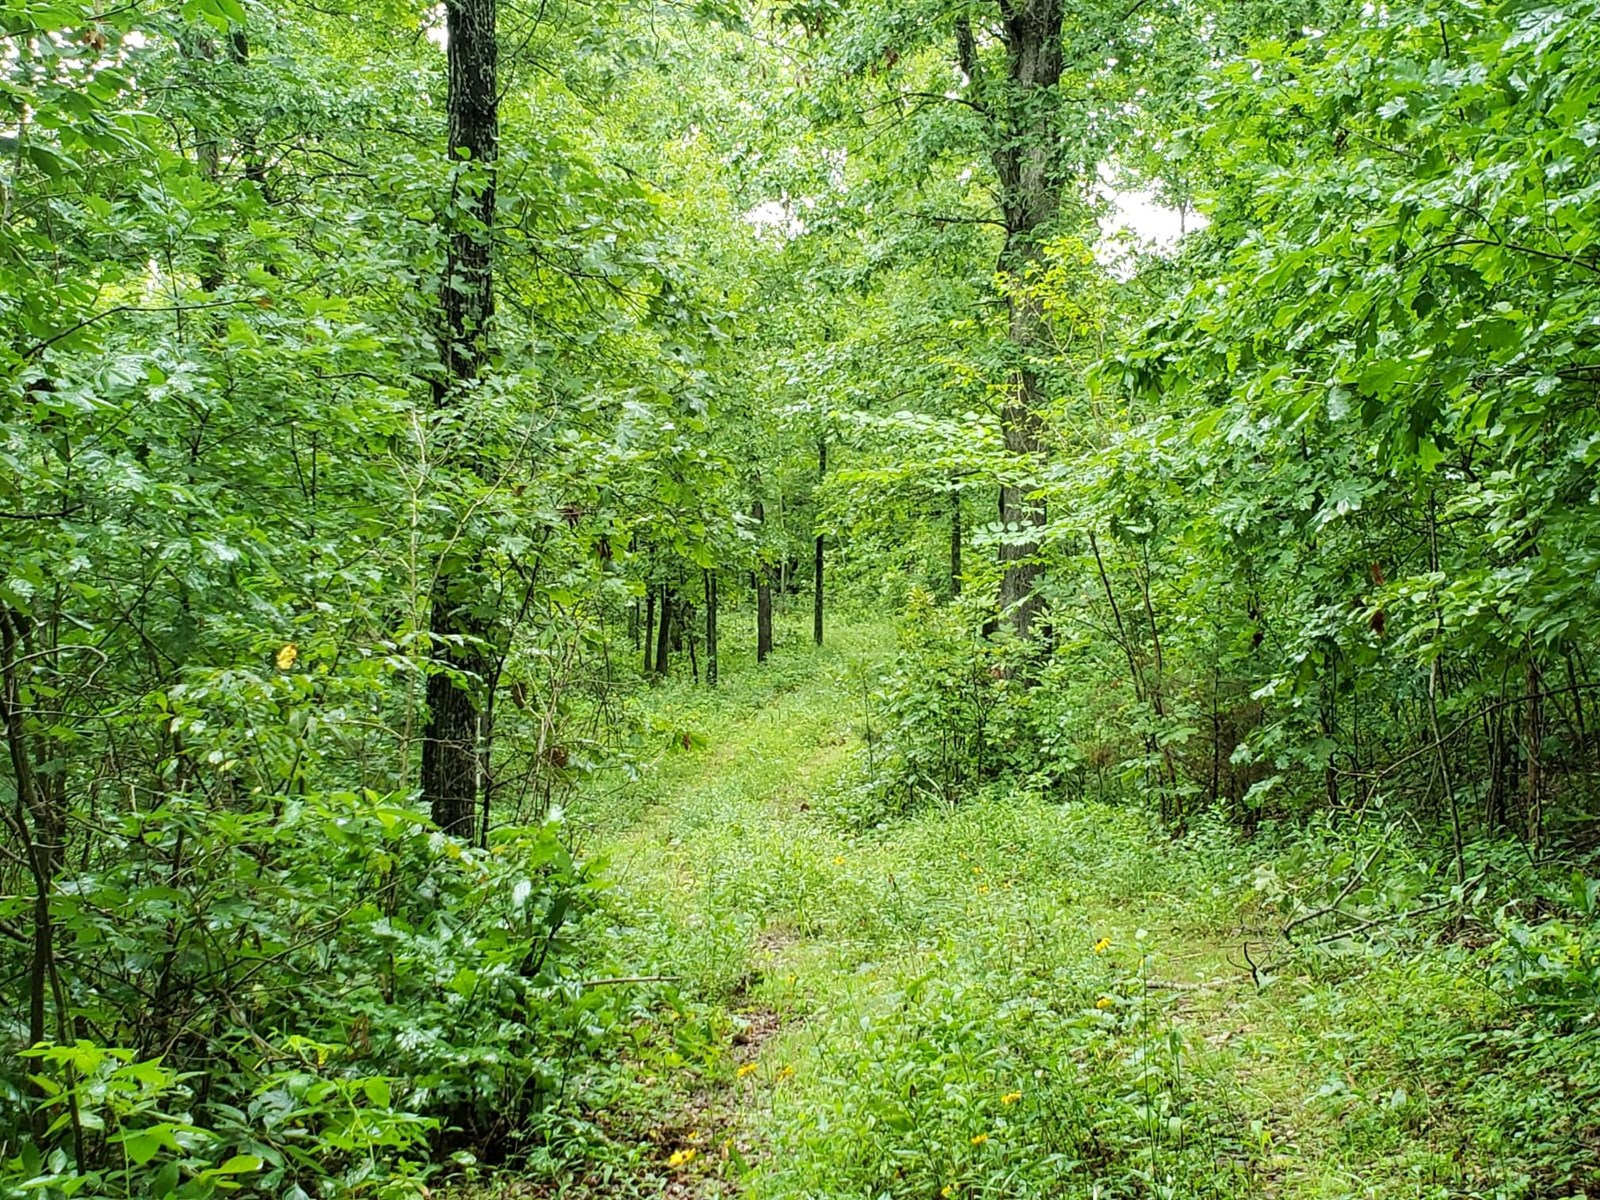 Land for Sale in Southern MO Ozarks